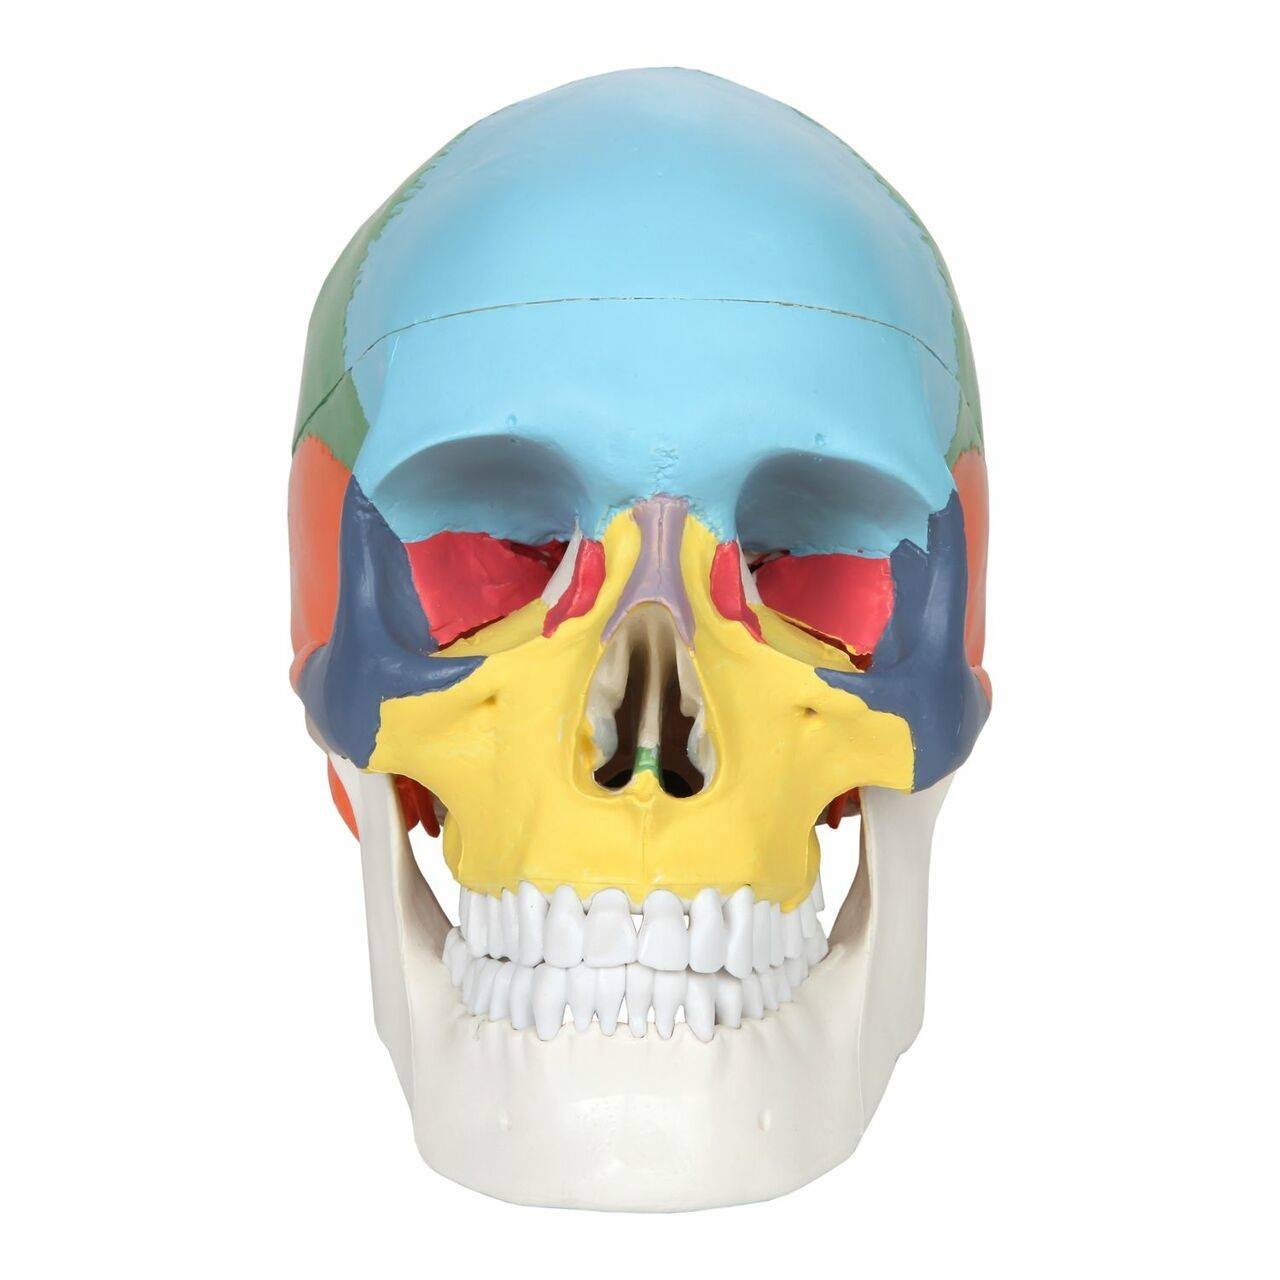 DMZH Didactic Human Skull Model Life Size Painted Medical Anatomical Skull Model Cast from Natural Specimen Scientist Child Experiment Teaching Model